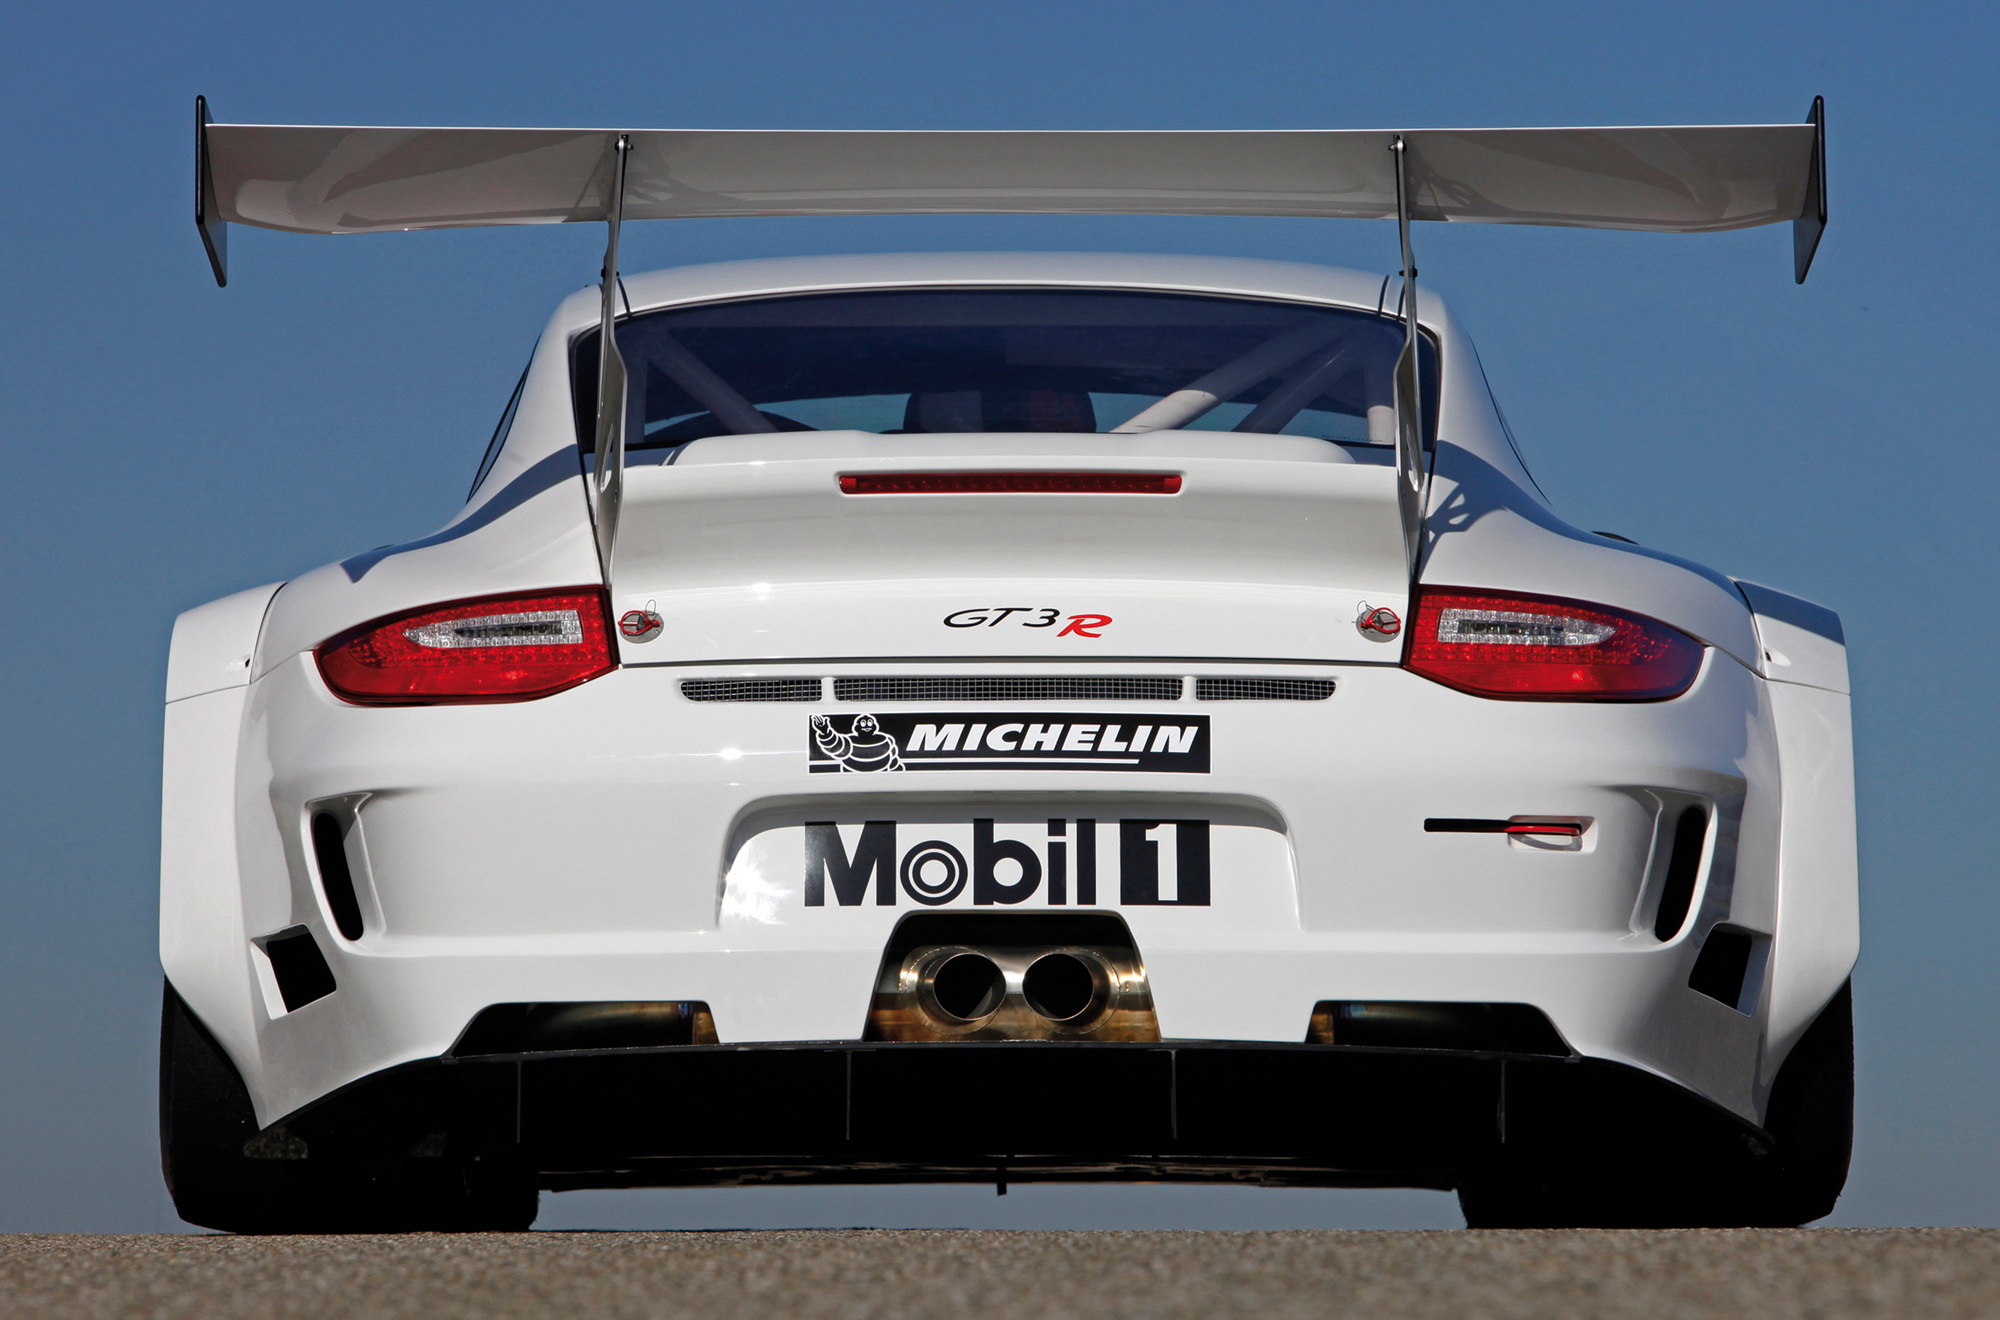 Following the Porsche 911 GT3